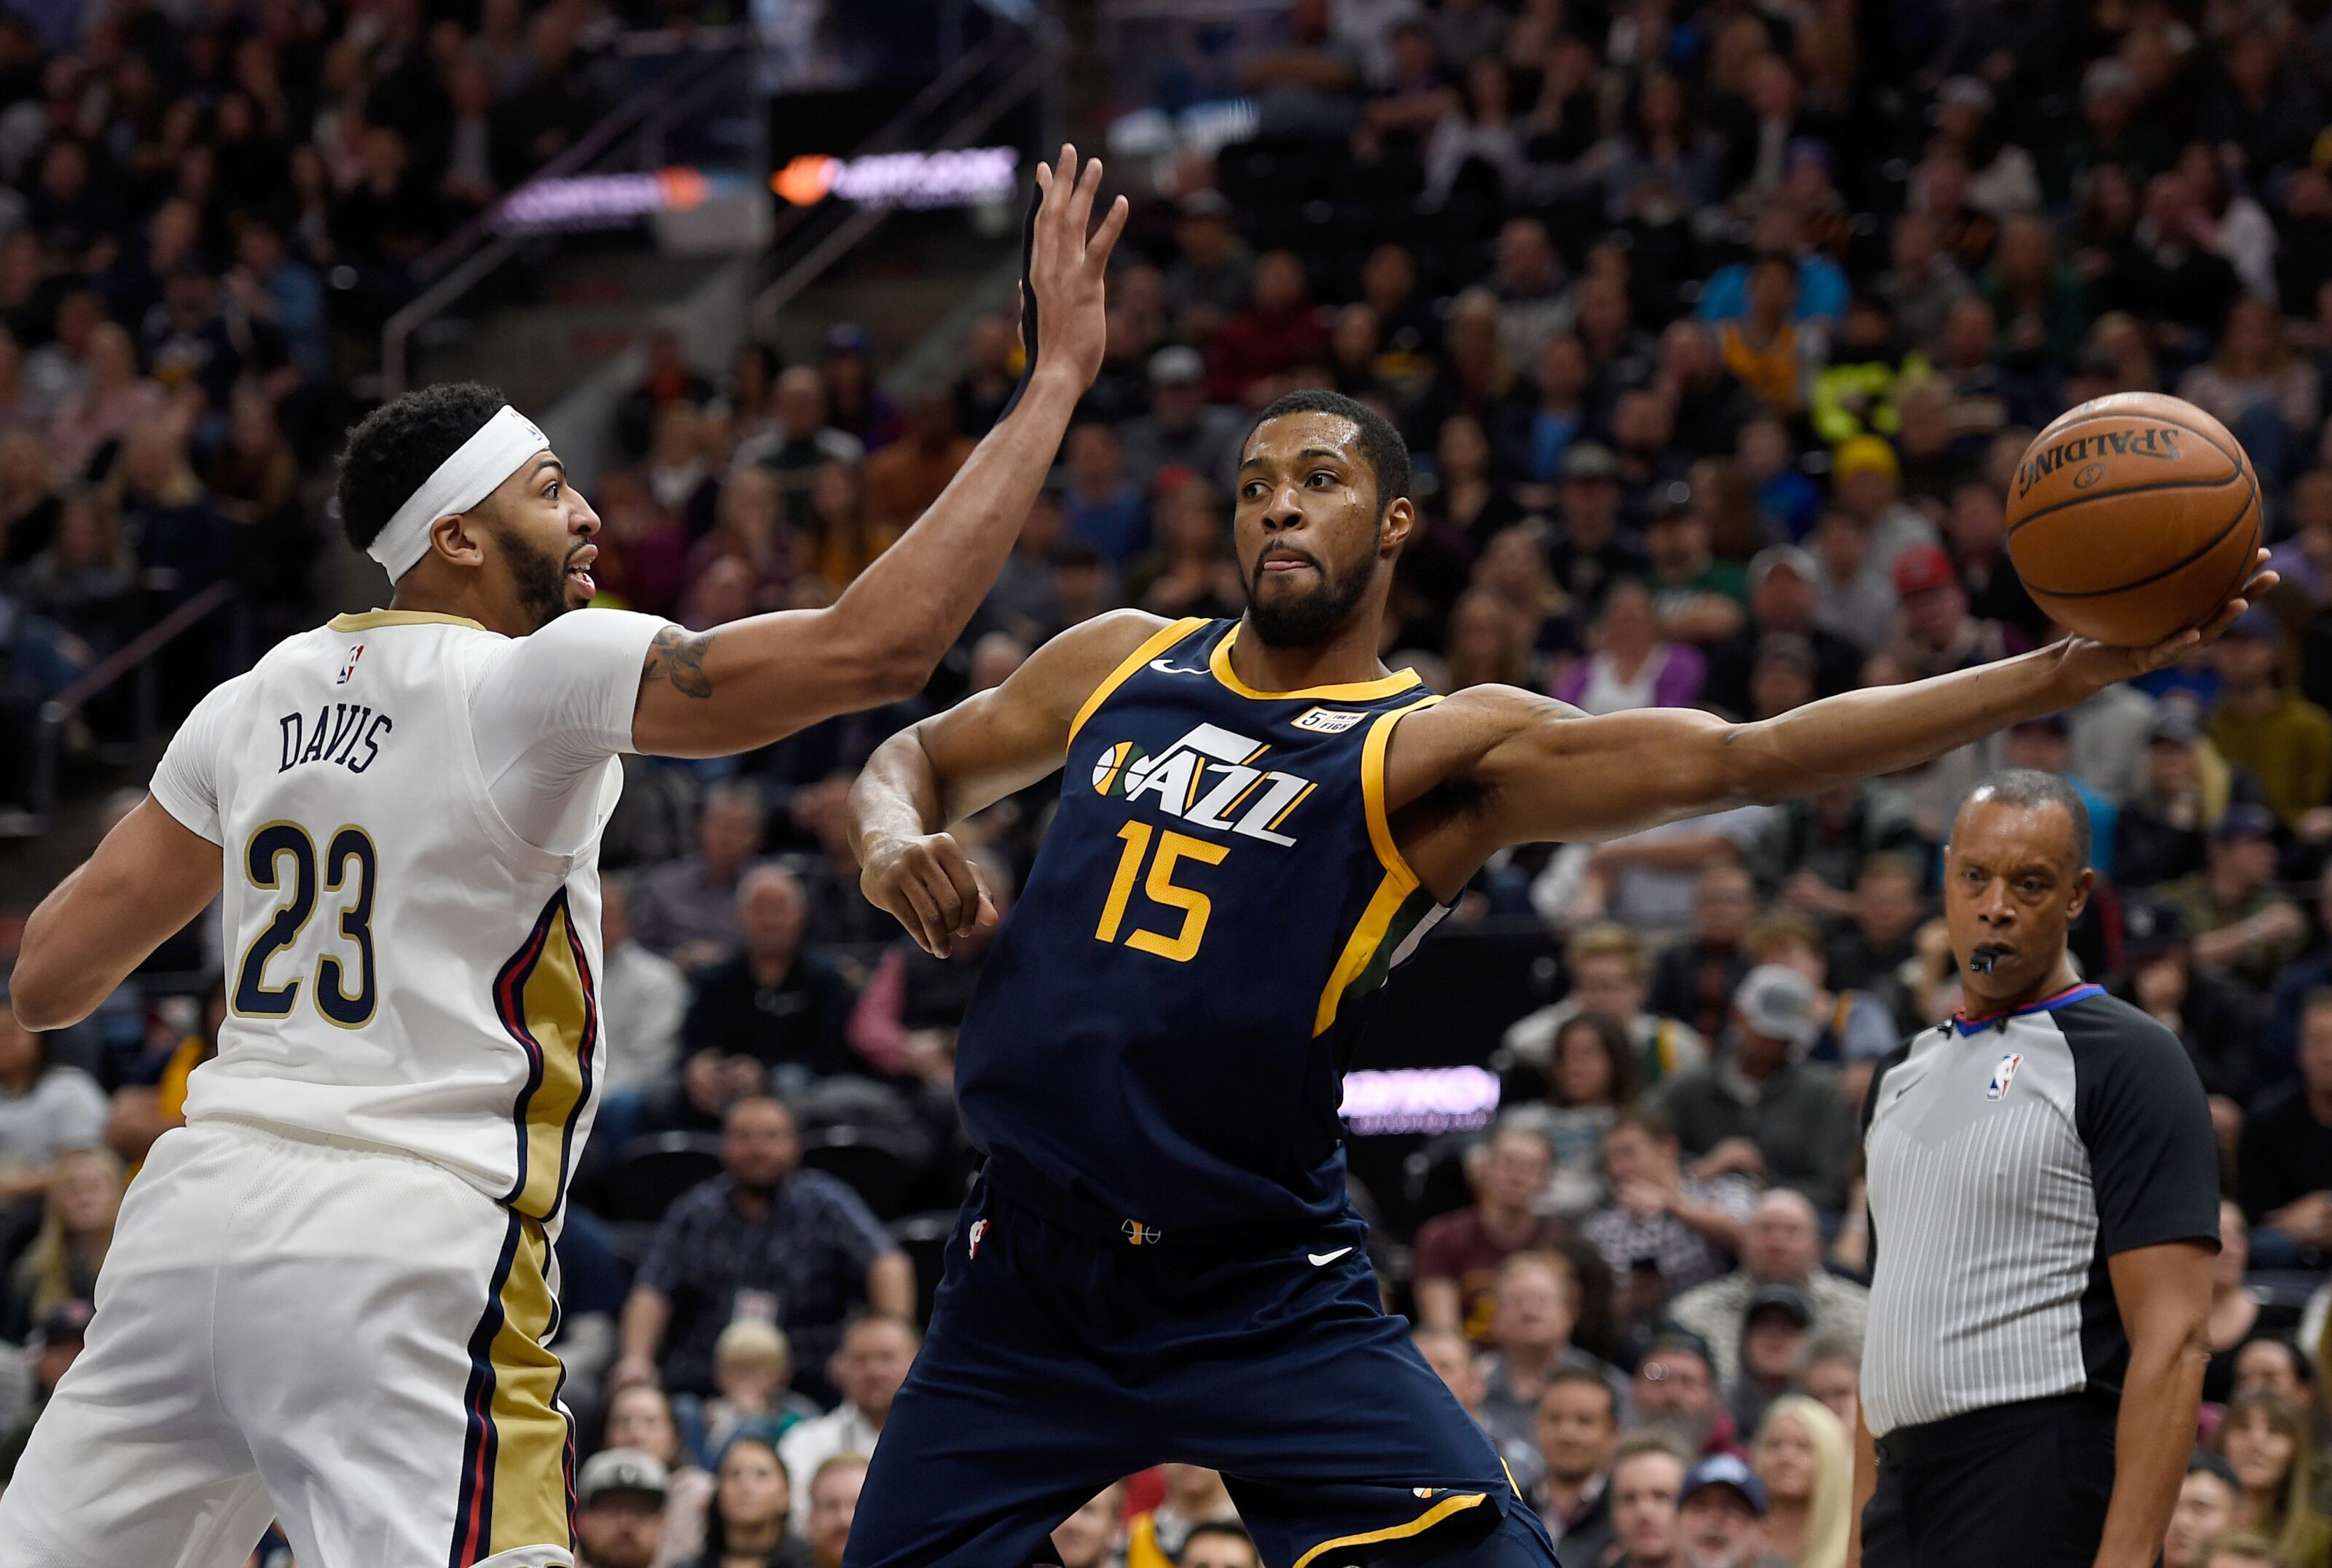 Derrick Favors Shows Savvy During New Orleans Pelicans Introductions